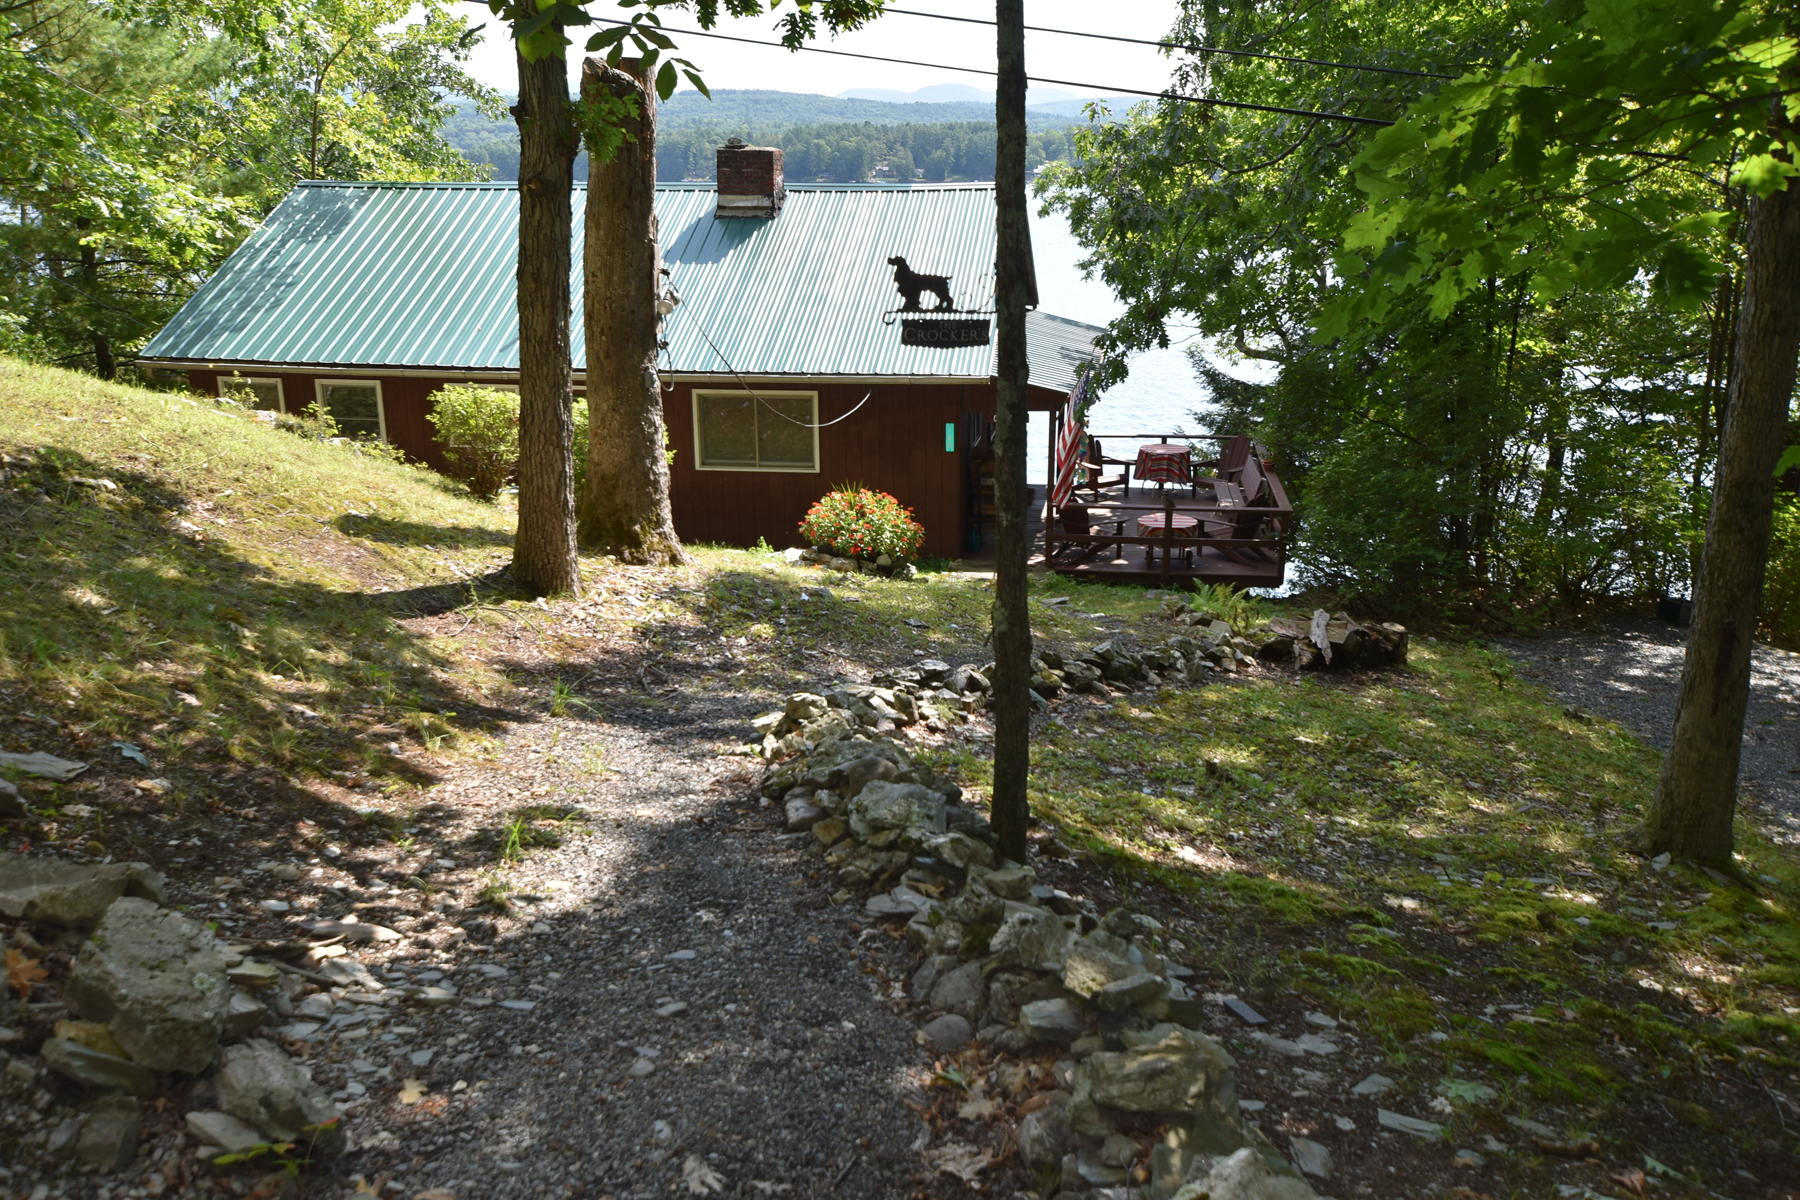 Single Family Homes for Sale at A Charming Camp with Beautiful Views! 160 Ryan Road Castleton, Vermont 05735 United States